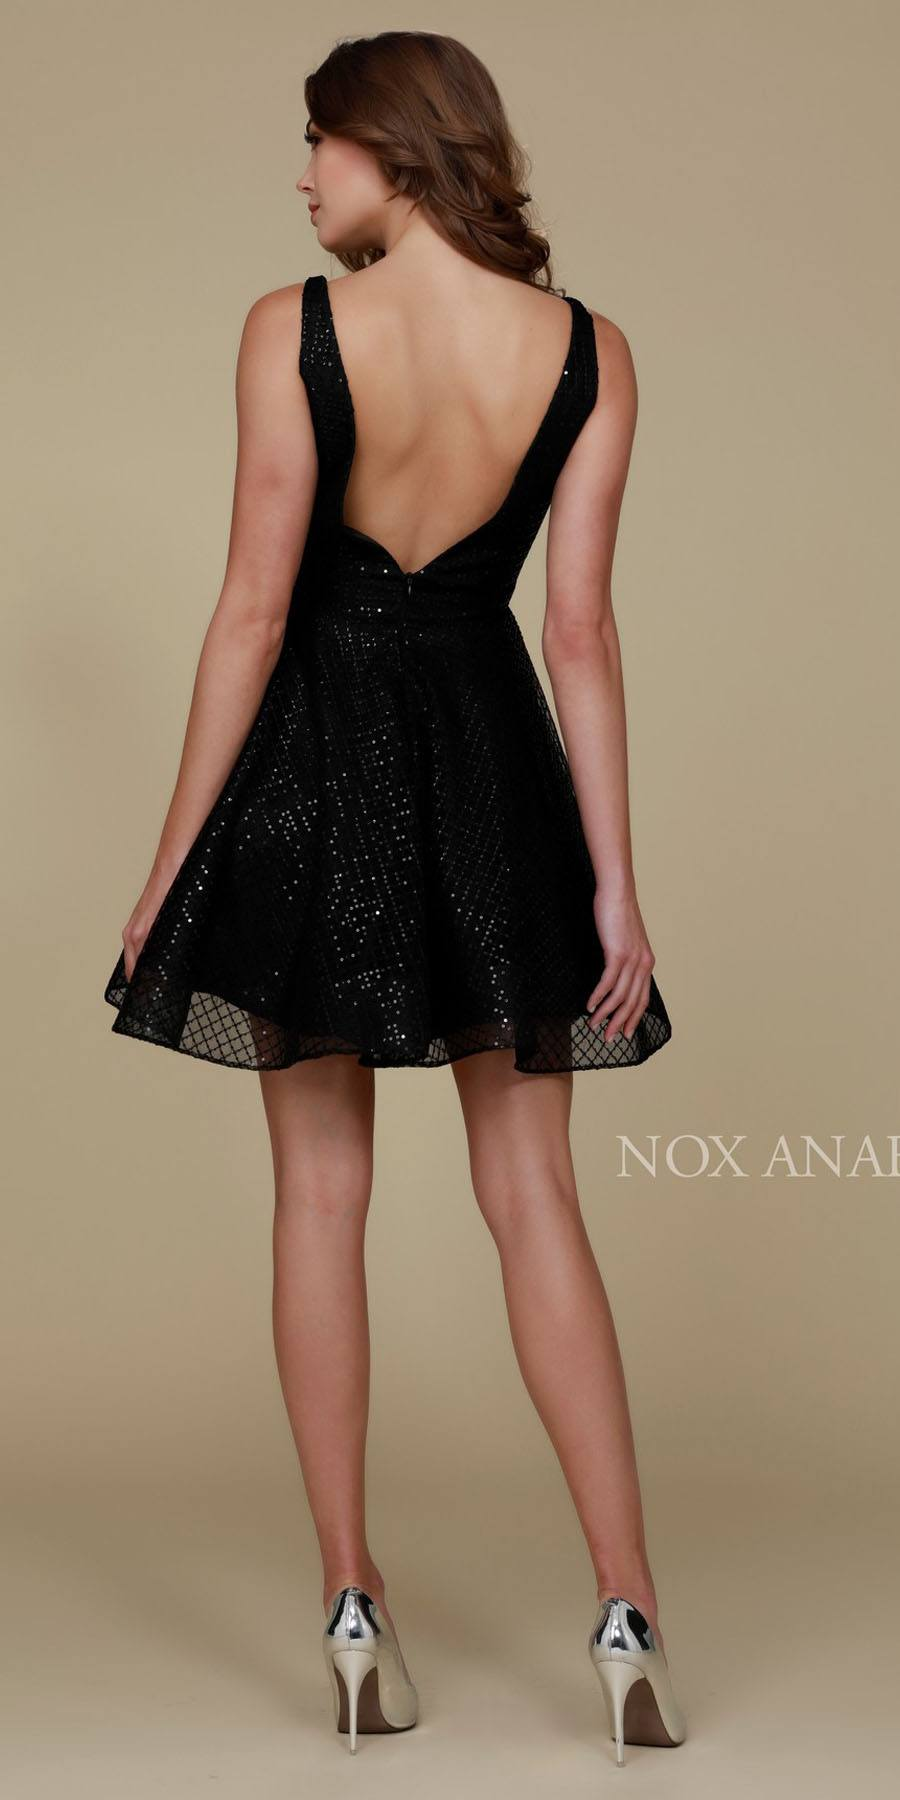 b05c5c0f59 ... Sequins Homecoming Dress Black A Line Deep V Neck Illusion Side Cut  Outs Back View ...